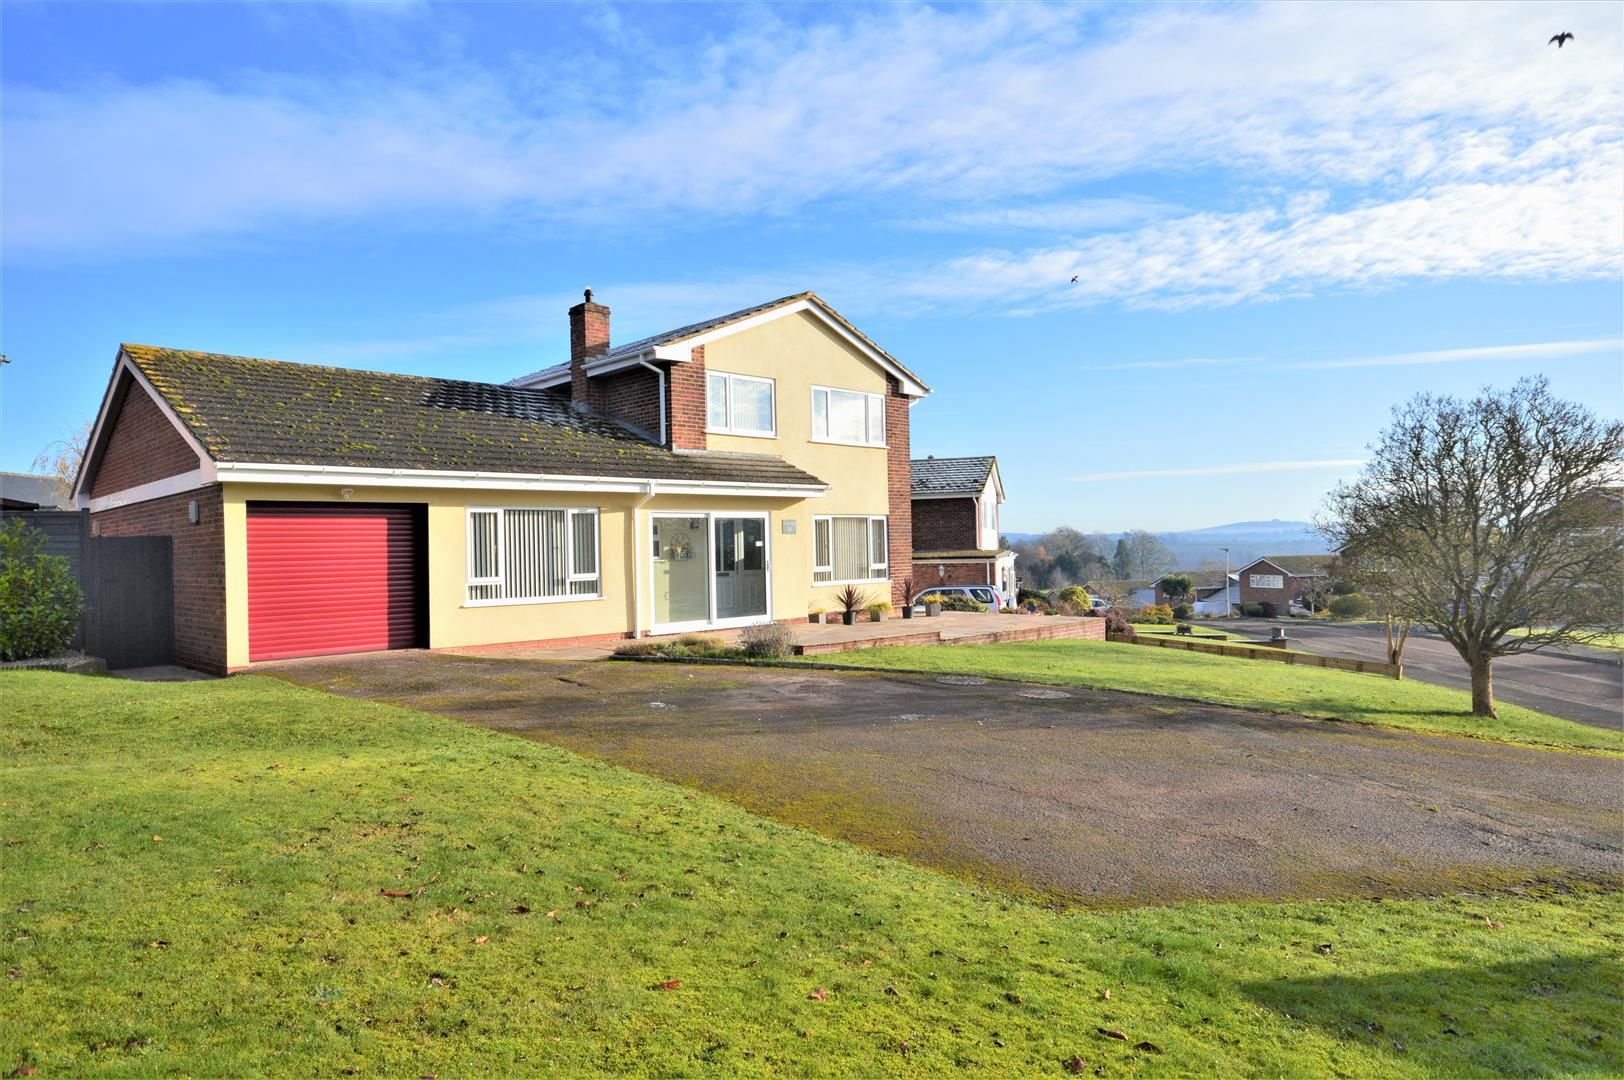 3 bed detached for sale in Kings Caple 7